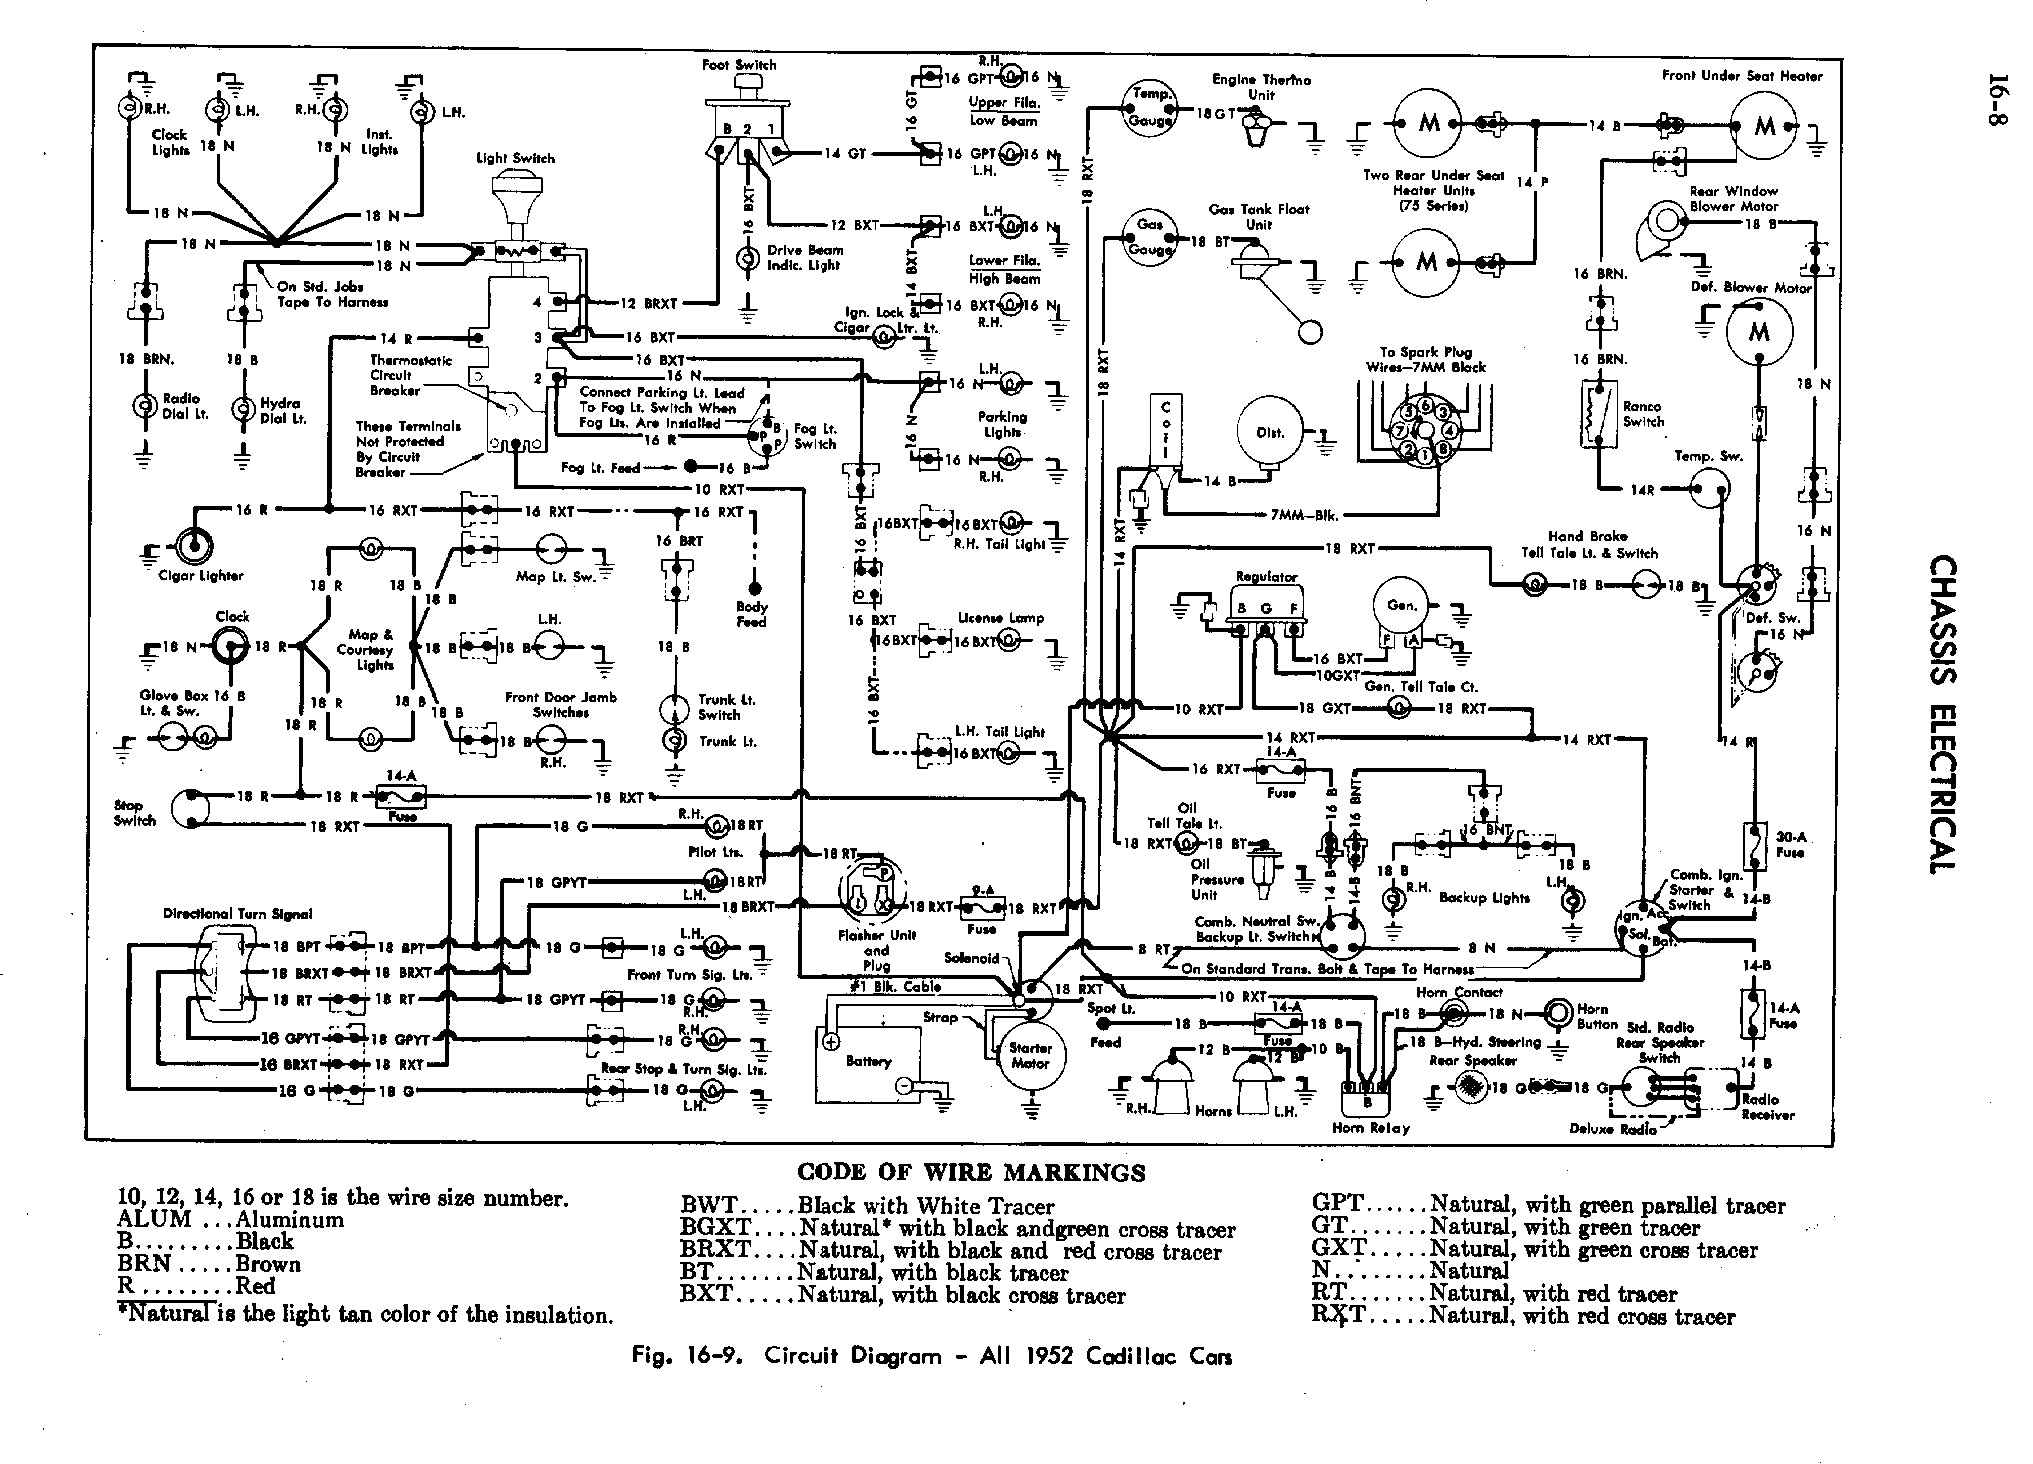 1952 Cadillac Shop Manual- Chassis Electrical Page 8 of 16